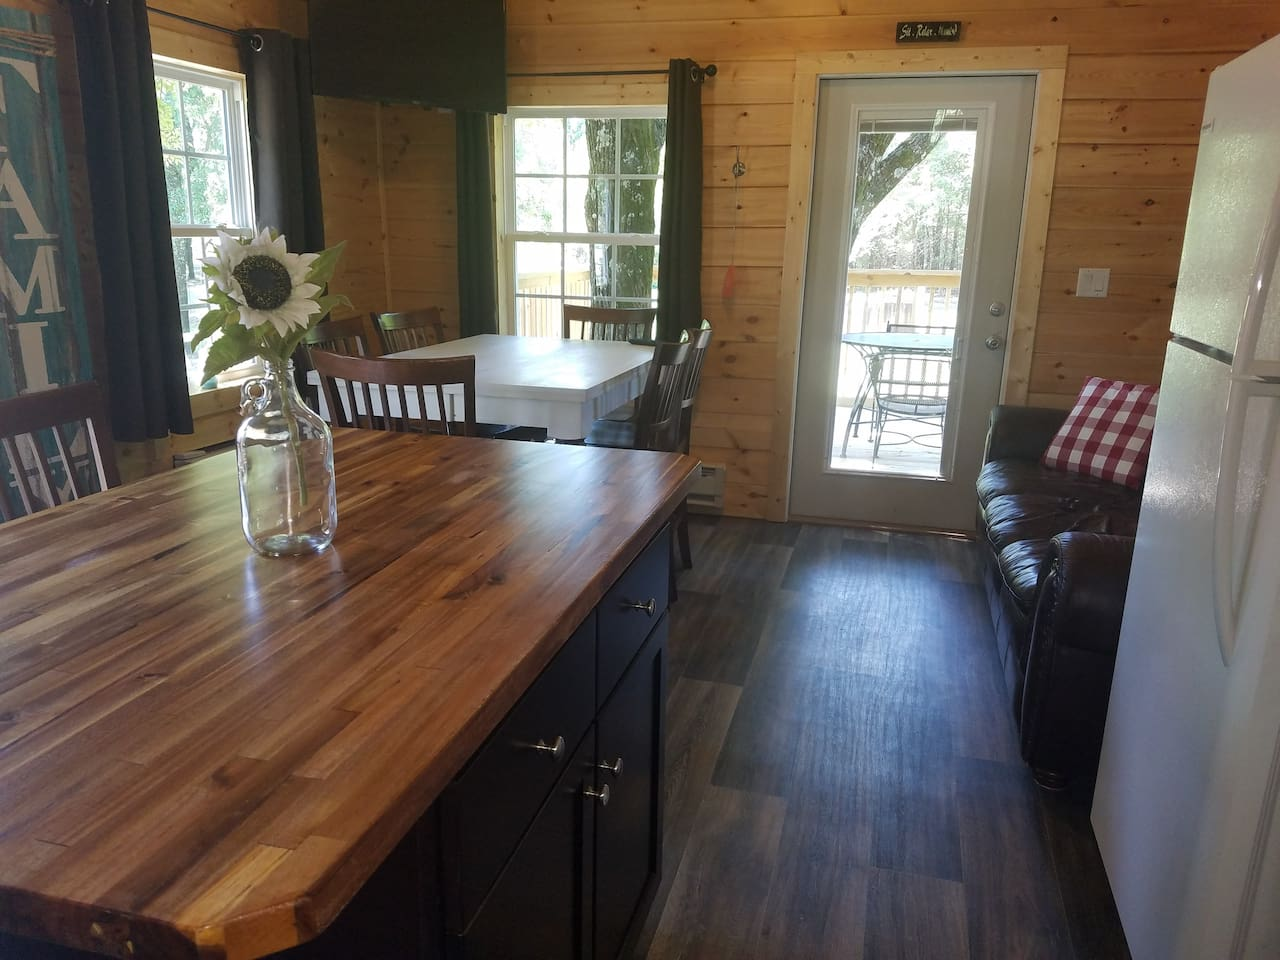 Comfortable leather couch and table seating for 9. Door opens to private deck overlooking wooded area.